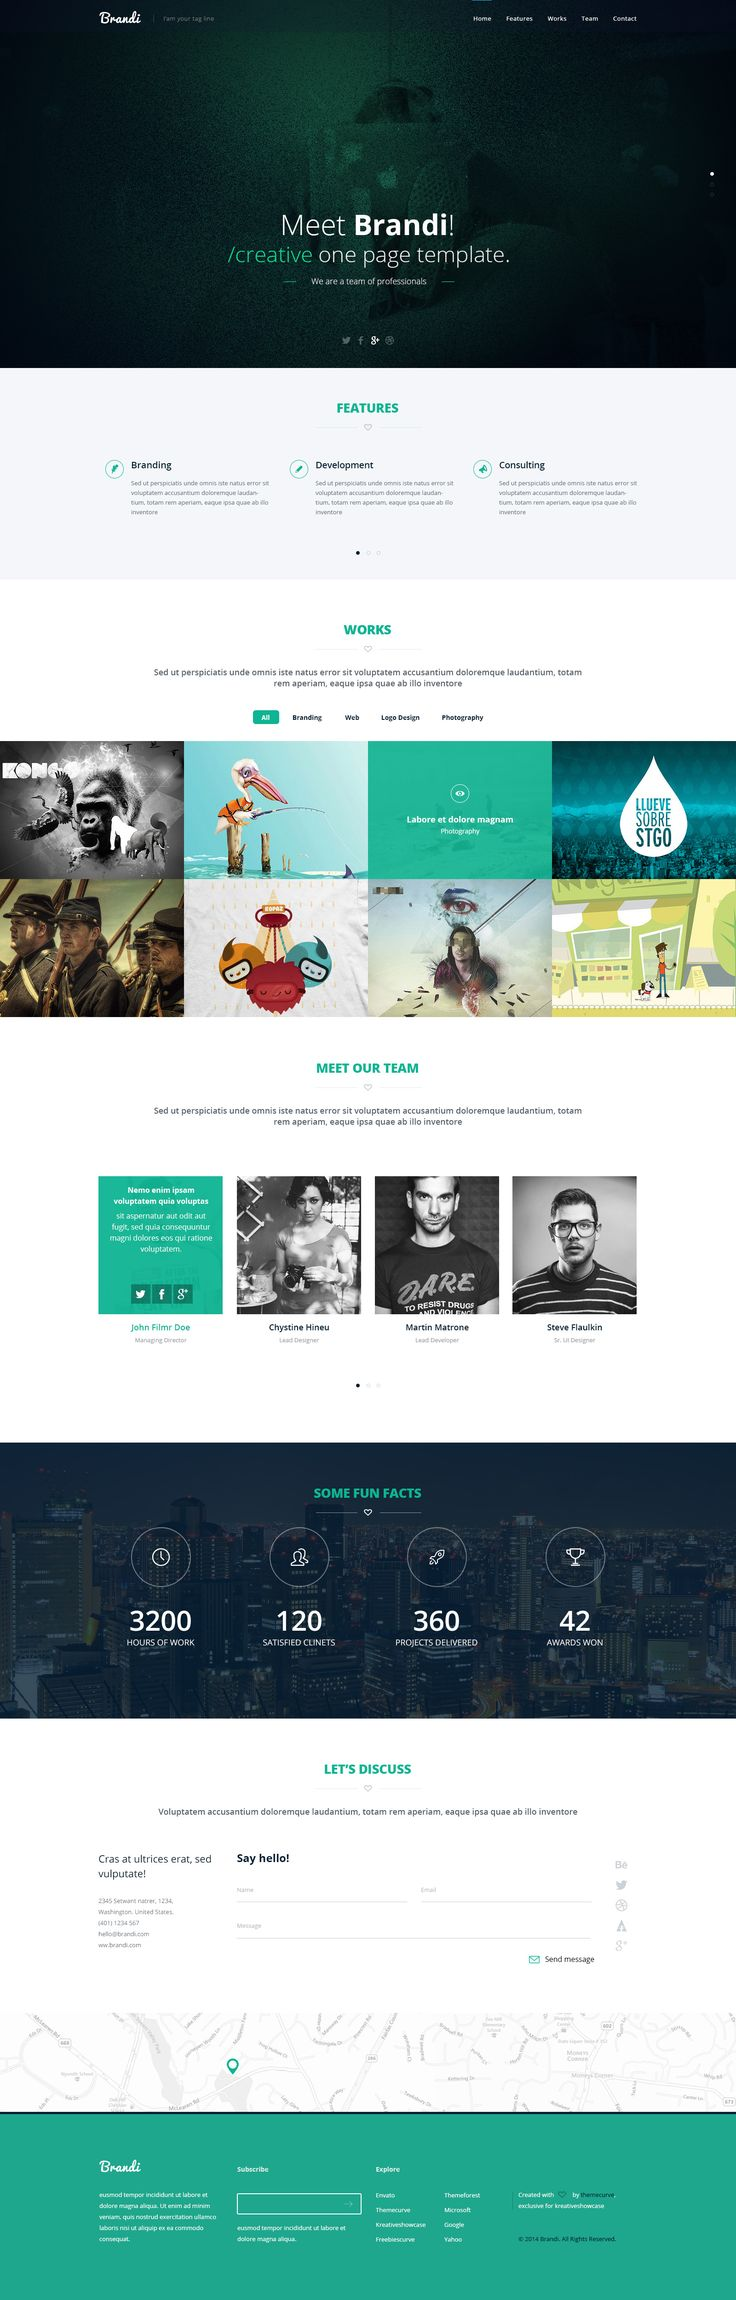 Freebie – Brandi  Design a Better Tomorrow. http://www.nevernorth.com #webdesign, #freelance, #graphic design